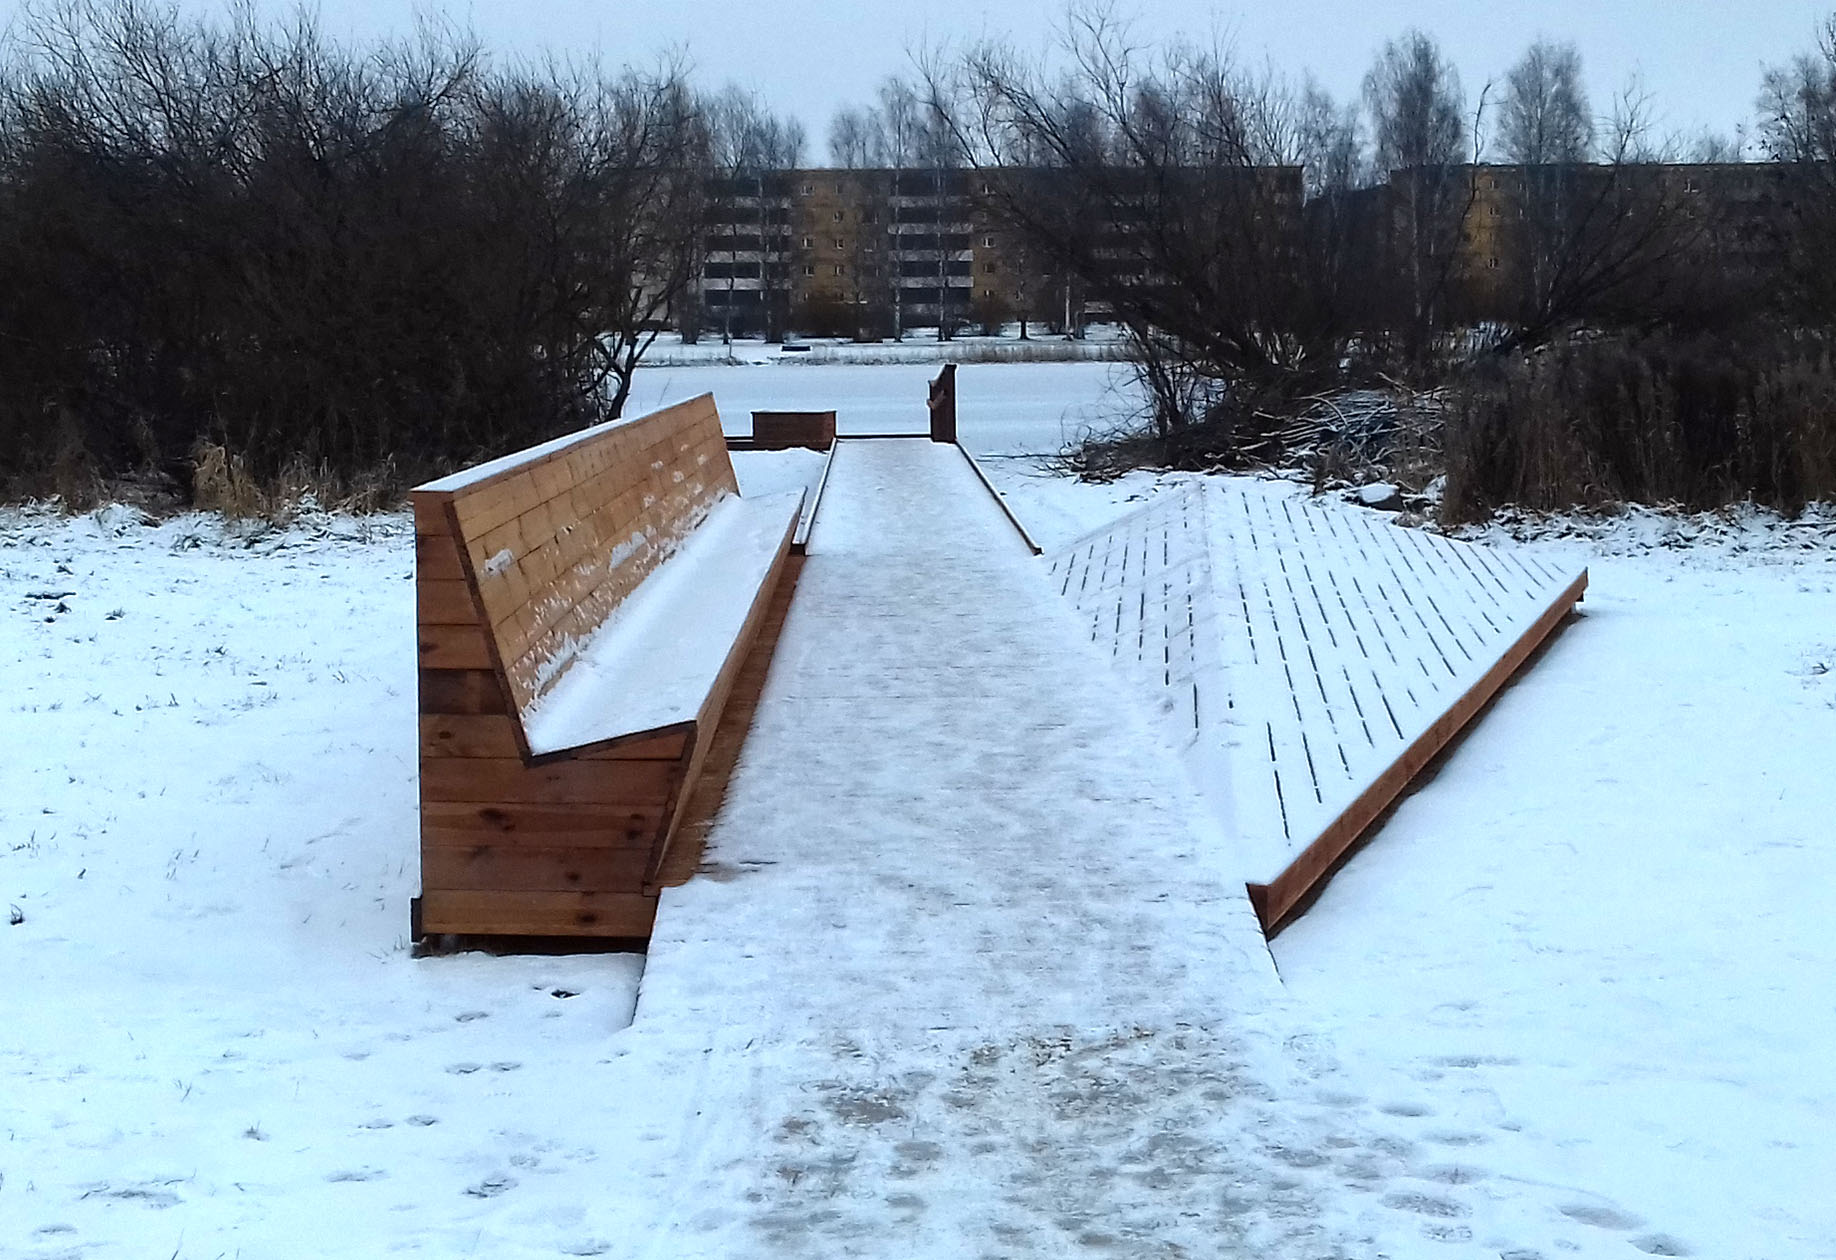 A bench and walk way lead to a snowy Anne Kanal